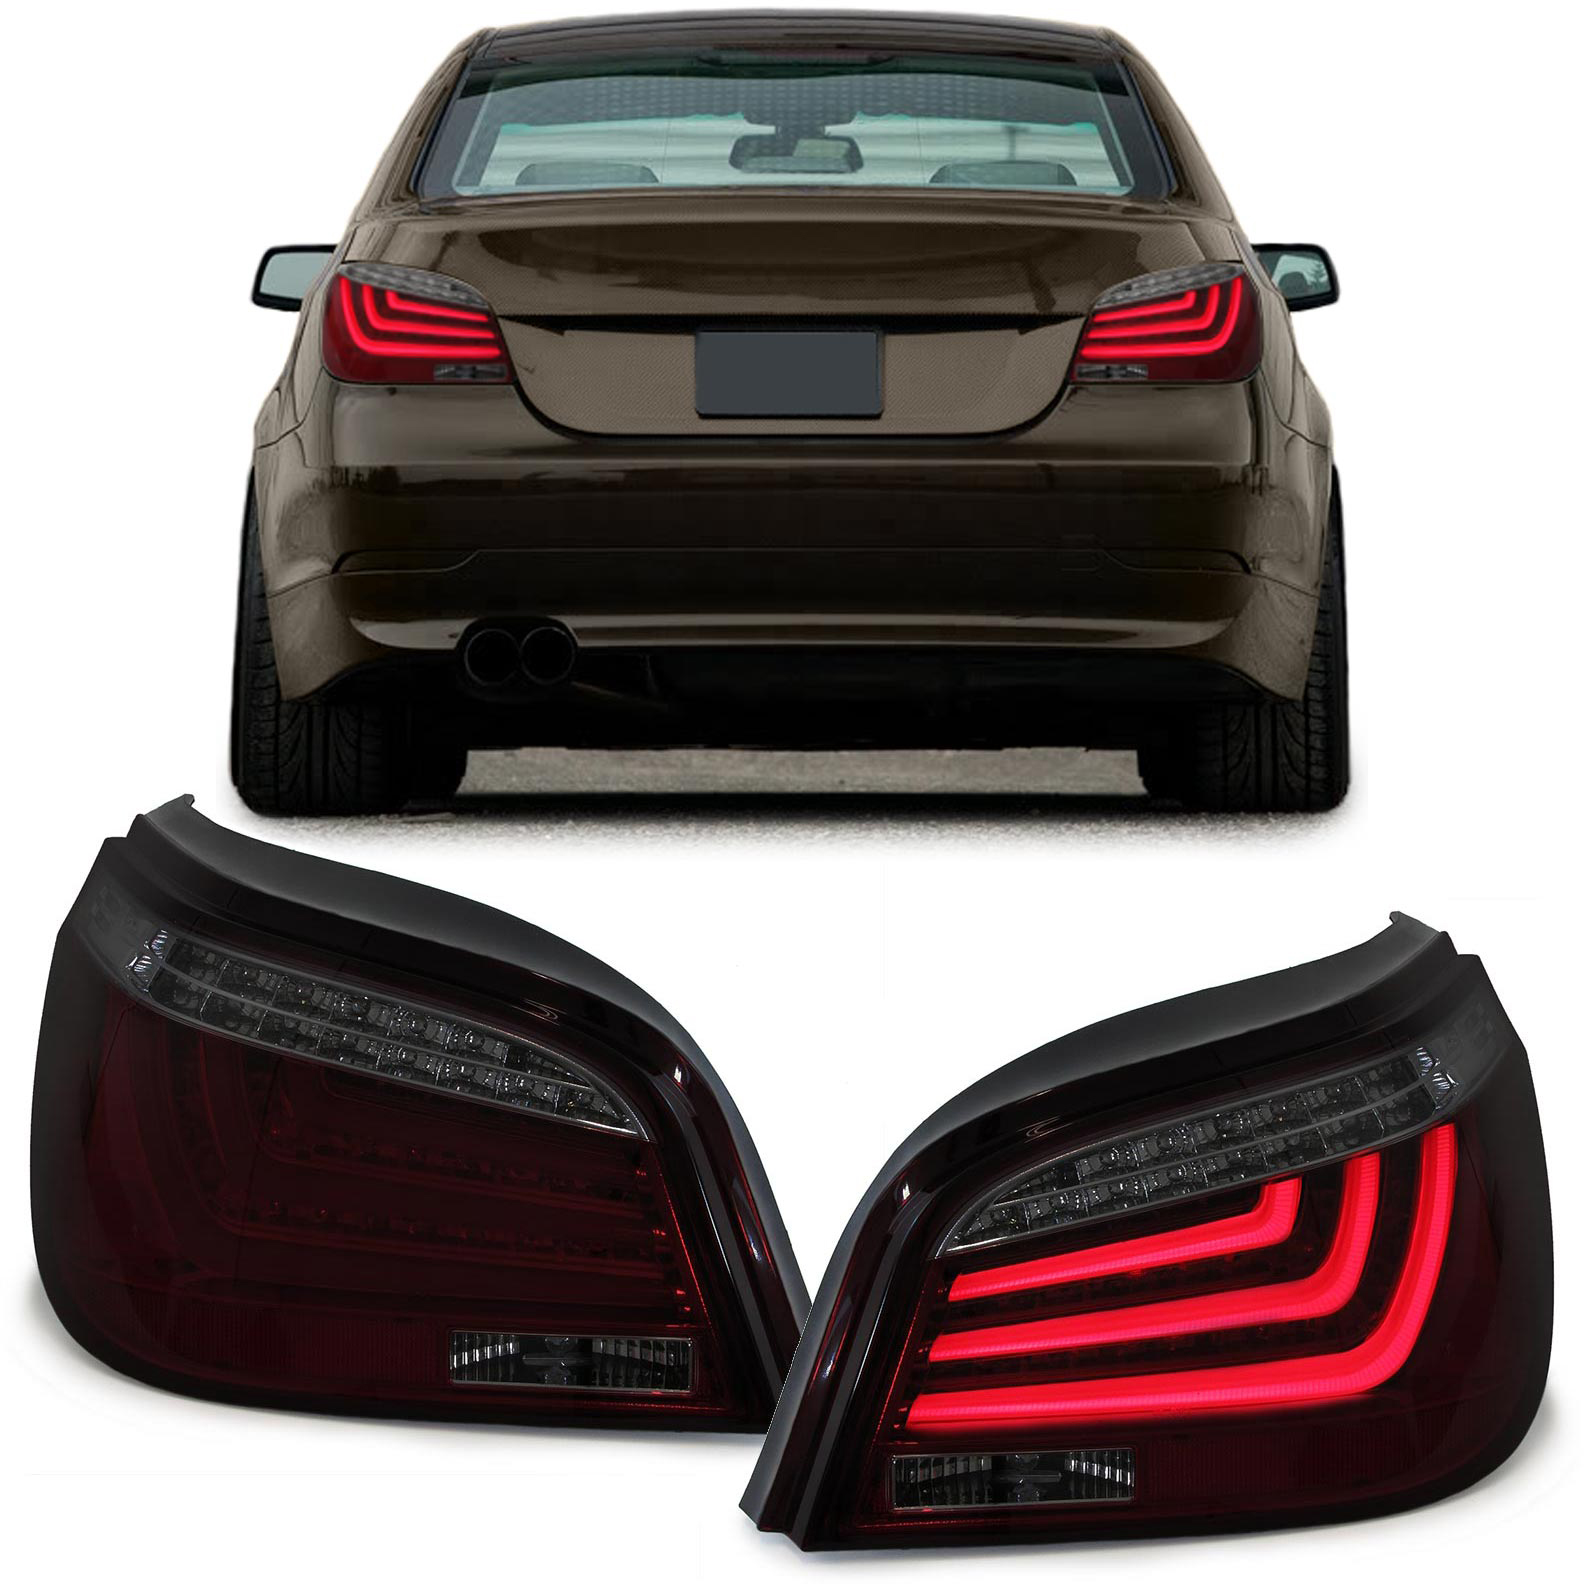 led lightbar klarglas r ckleuchten mit led blinker rot schwarz f r bmw 5er e60. Black Bedroom Furniture Sets. Home Design Ideas